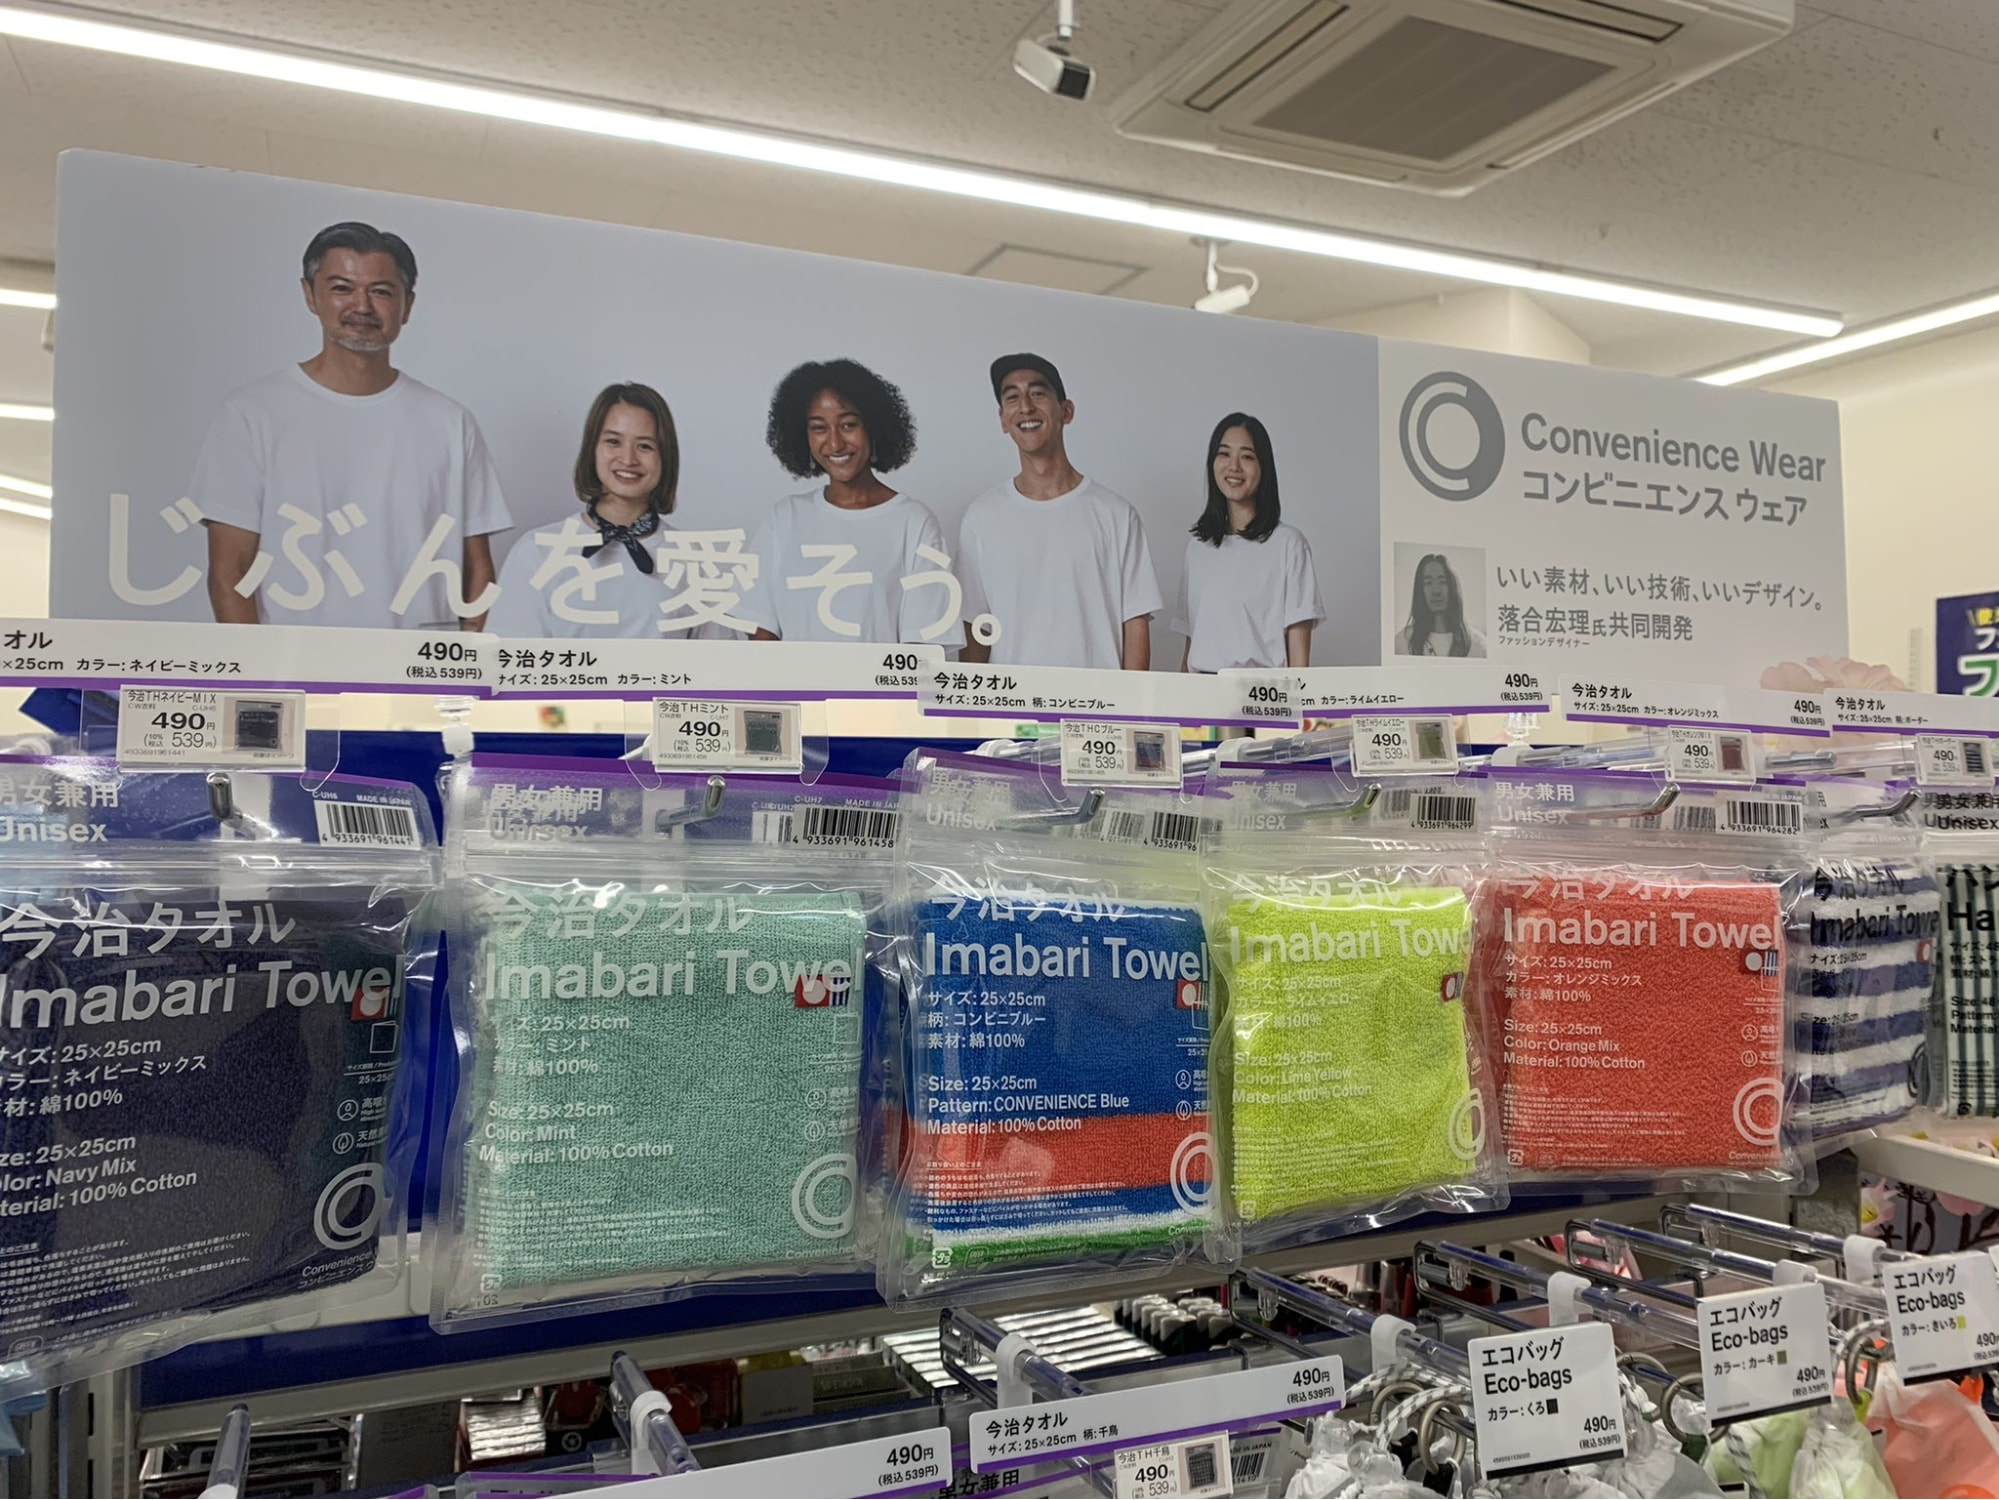 FamilyMart Convenience Wear - In-store poster with shirts piled